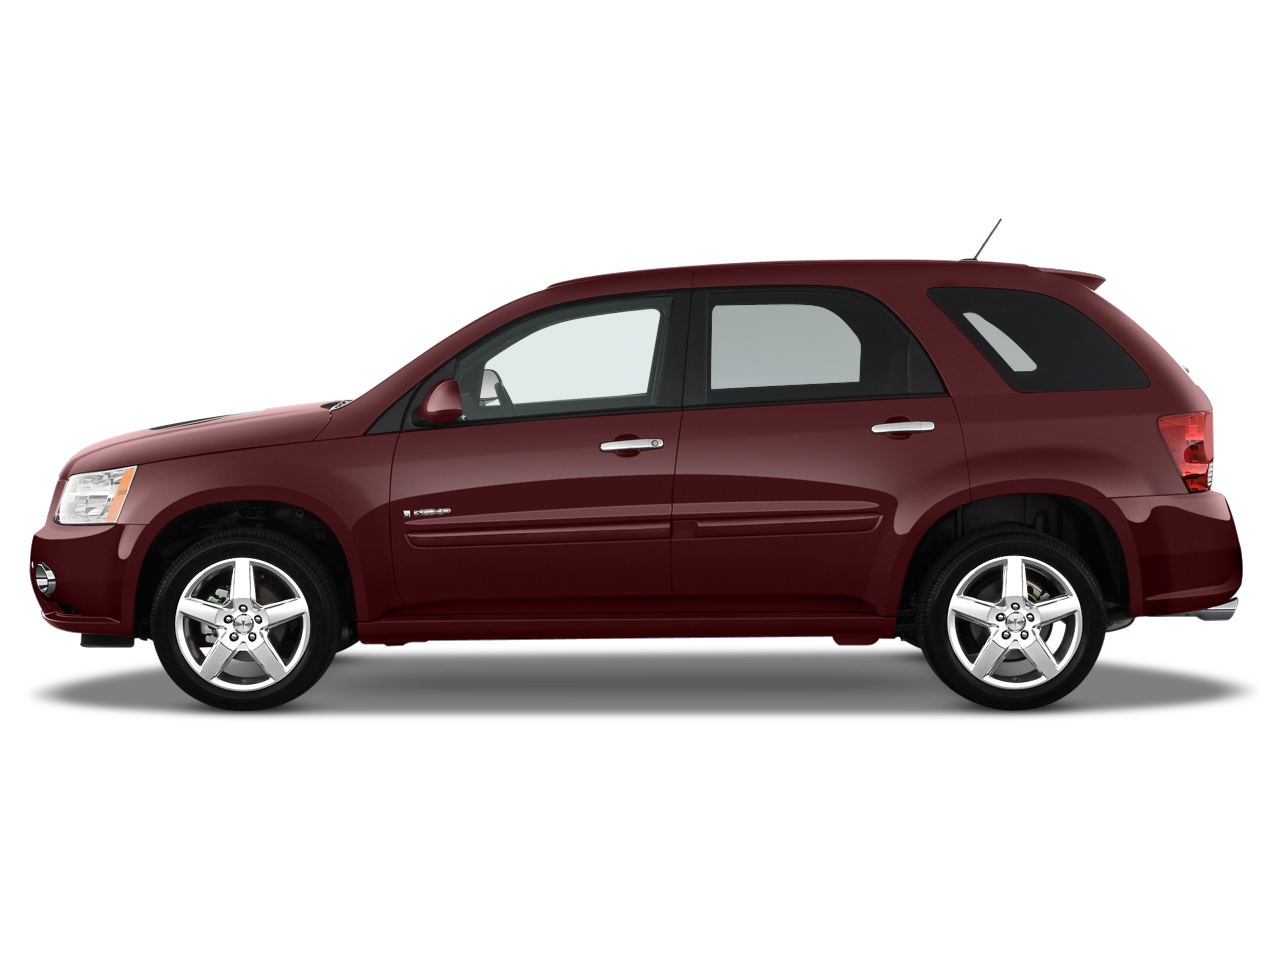 2008 Pontiac Torrent Gxp Latest News Features And Auto Show Coverage Automobile Magazine